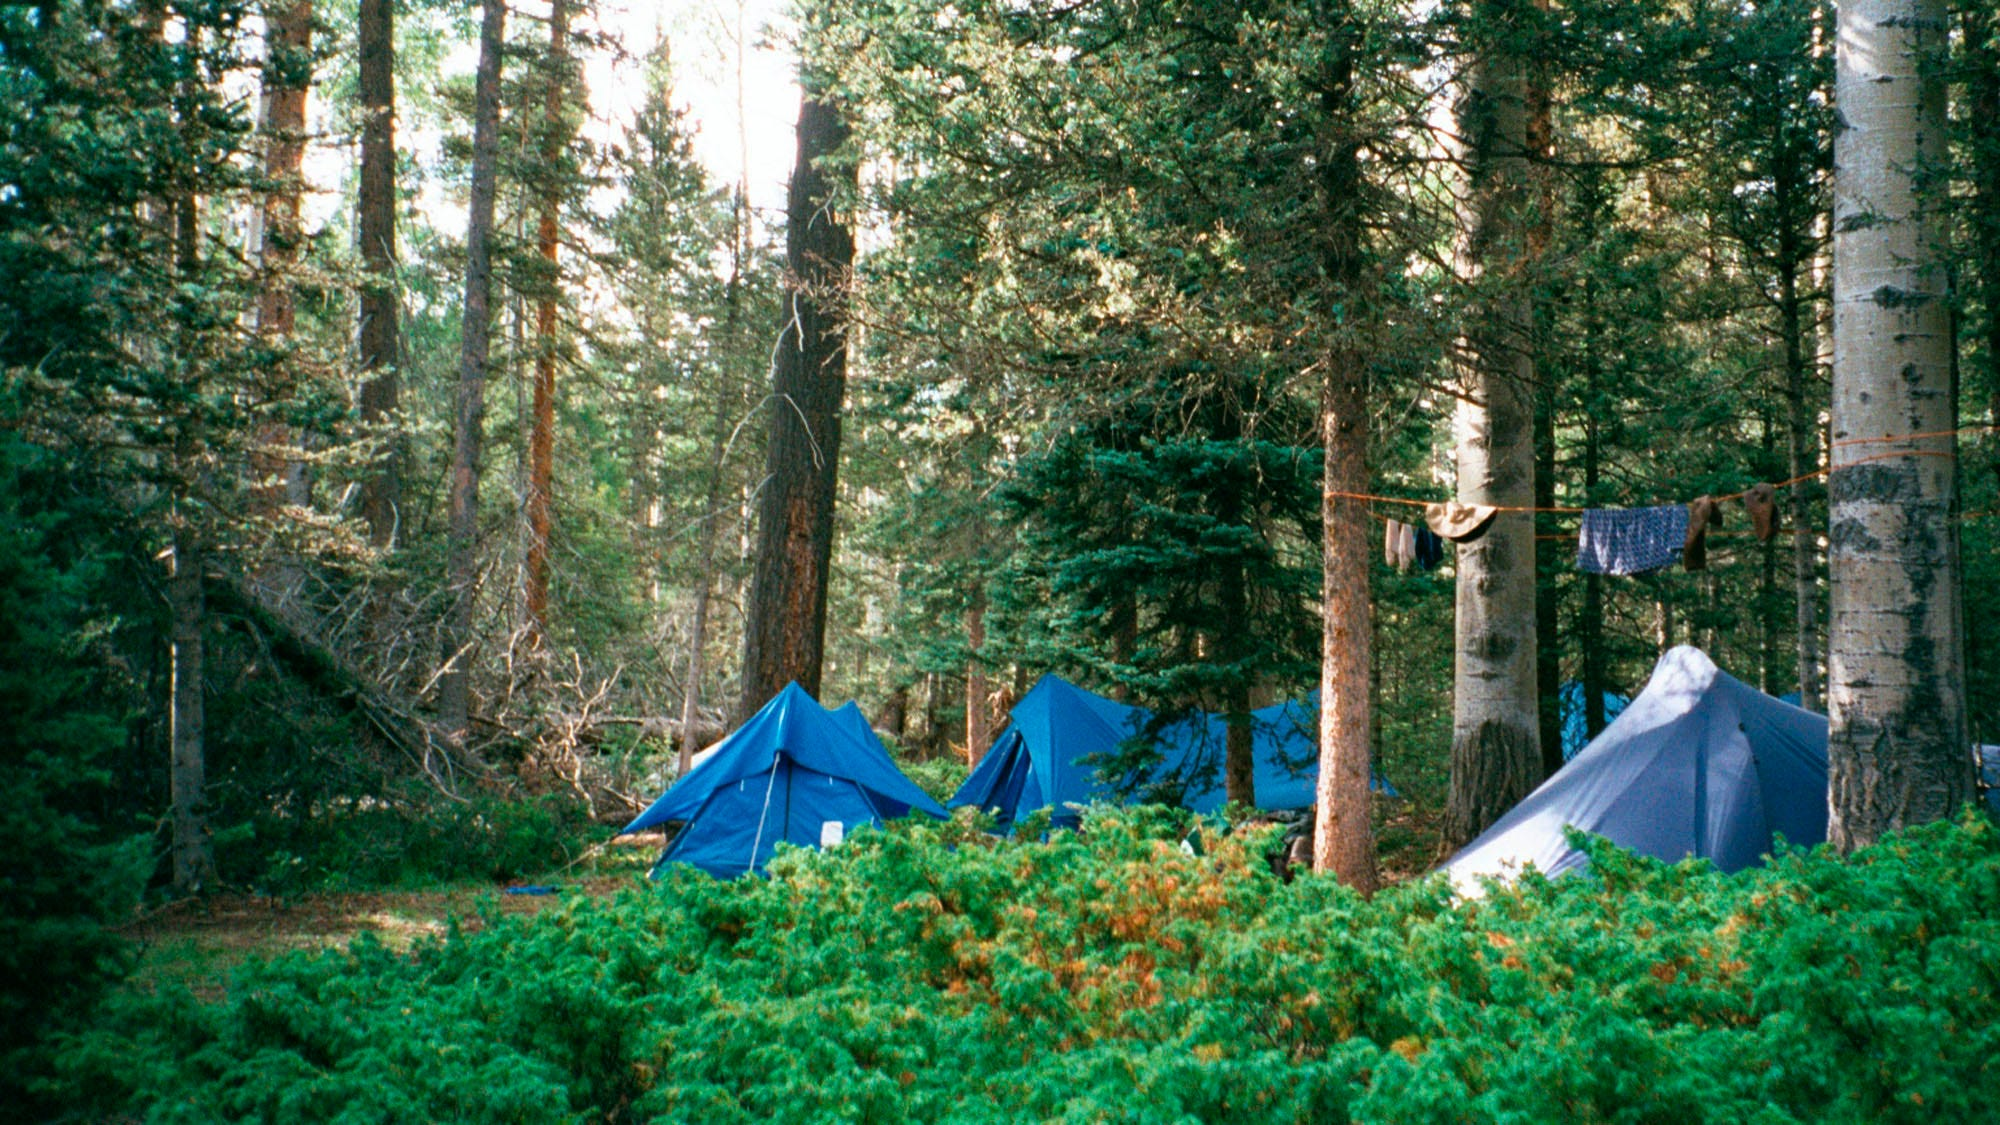 A campsite off the trail to the summit of the second highest peak in New Mexico's Philmont Scout Ranch. Last year, the national Boy Scouts of America confirmed it was using Philmont as collateral for a line of credit for insurance.